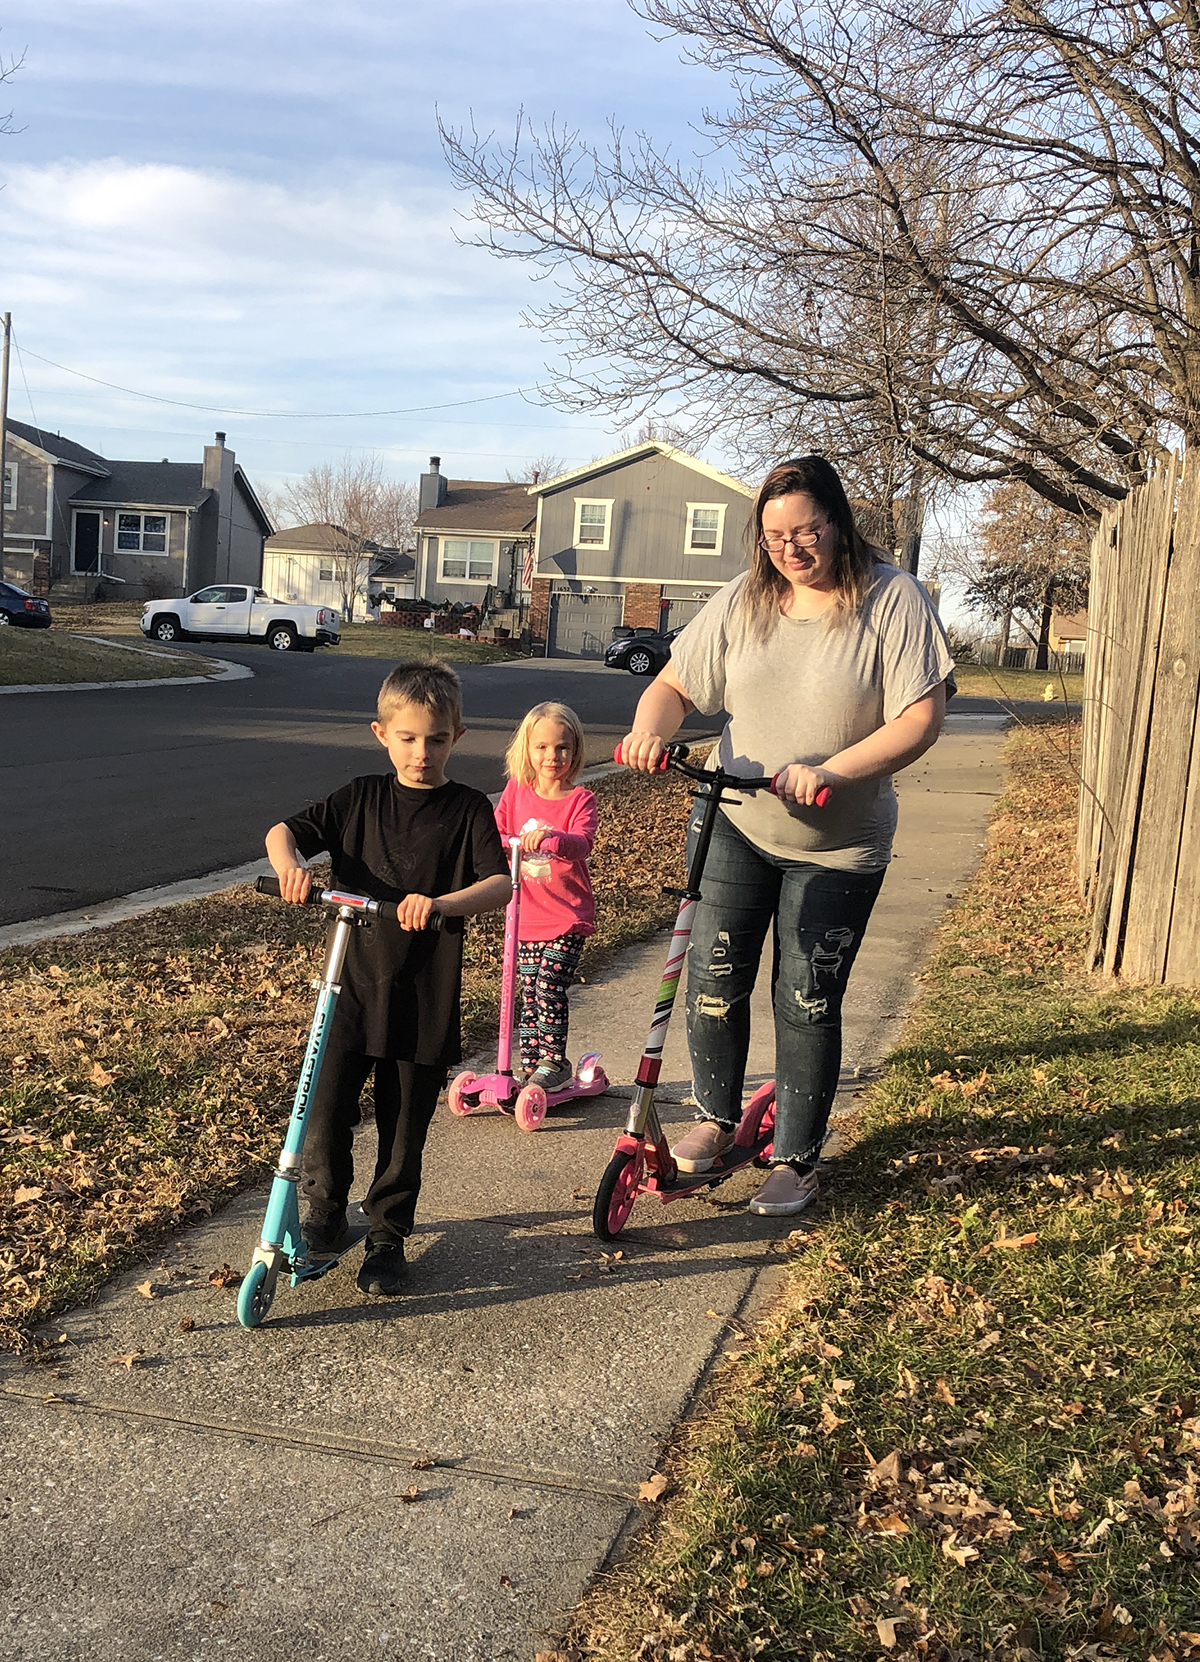 Ride Together with Scooters for the Whole Family